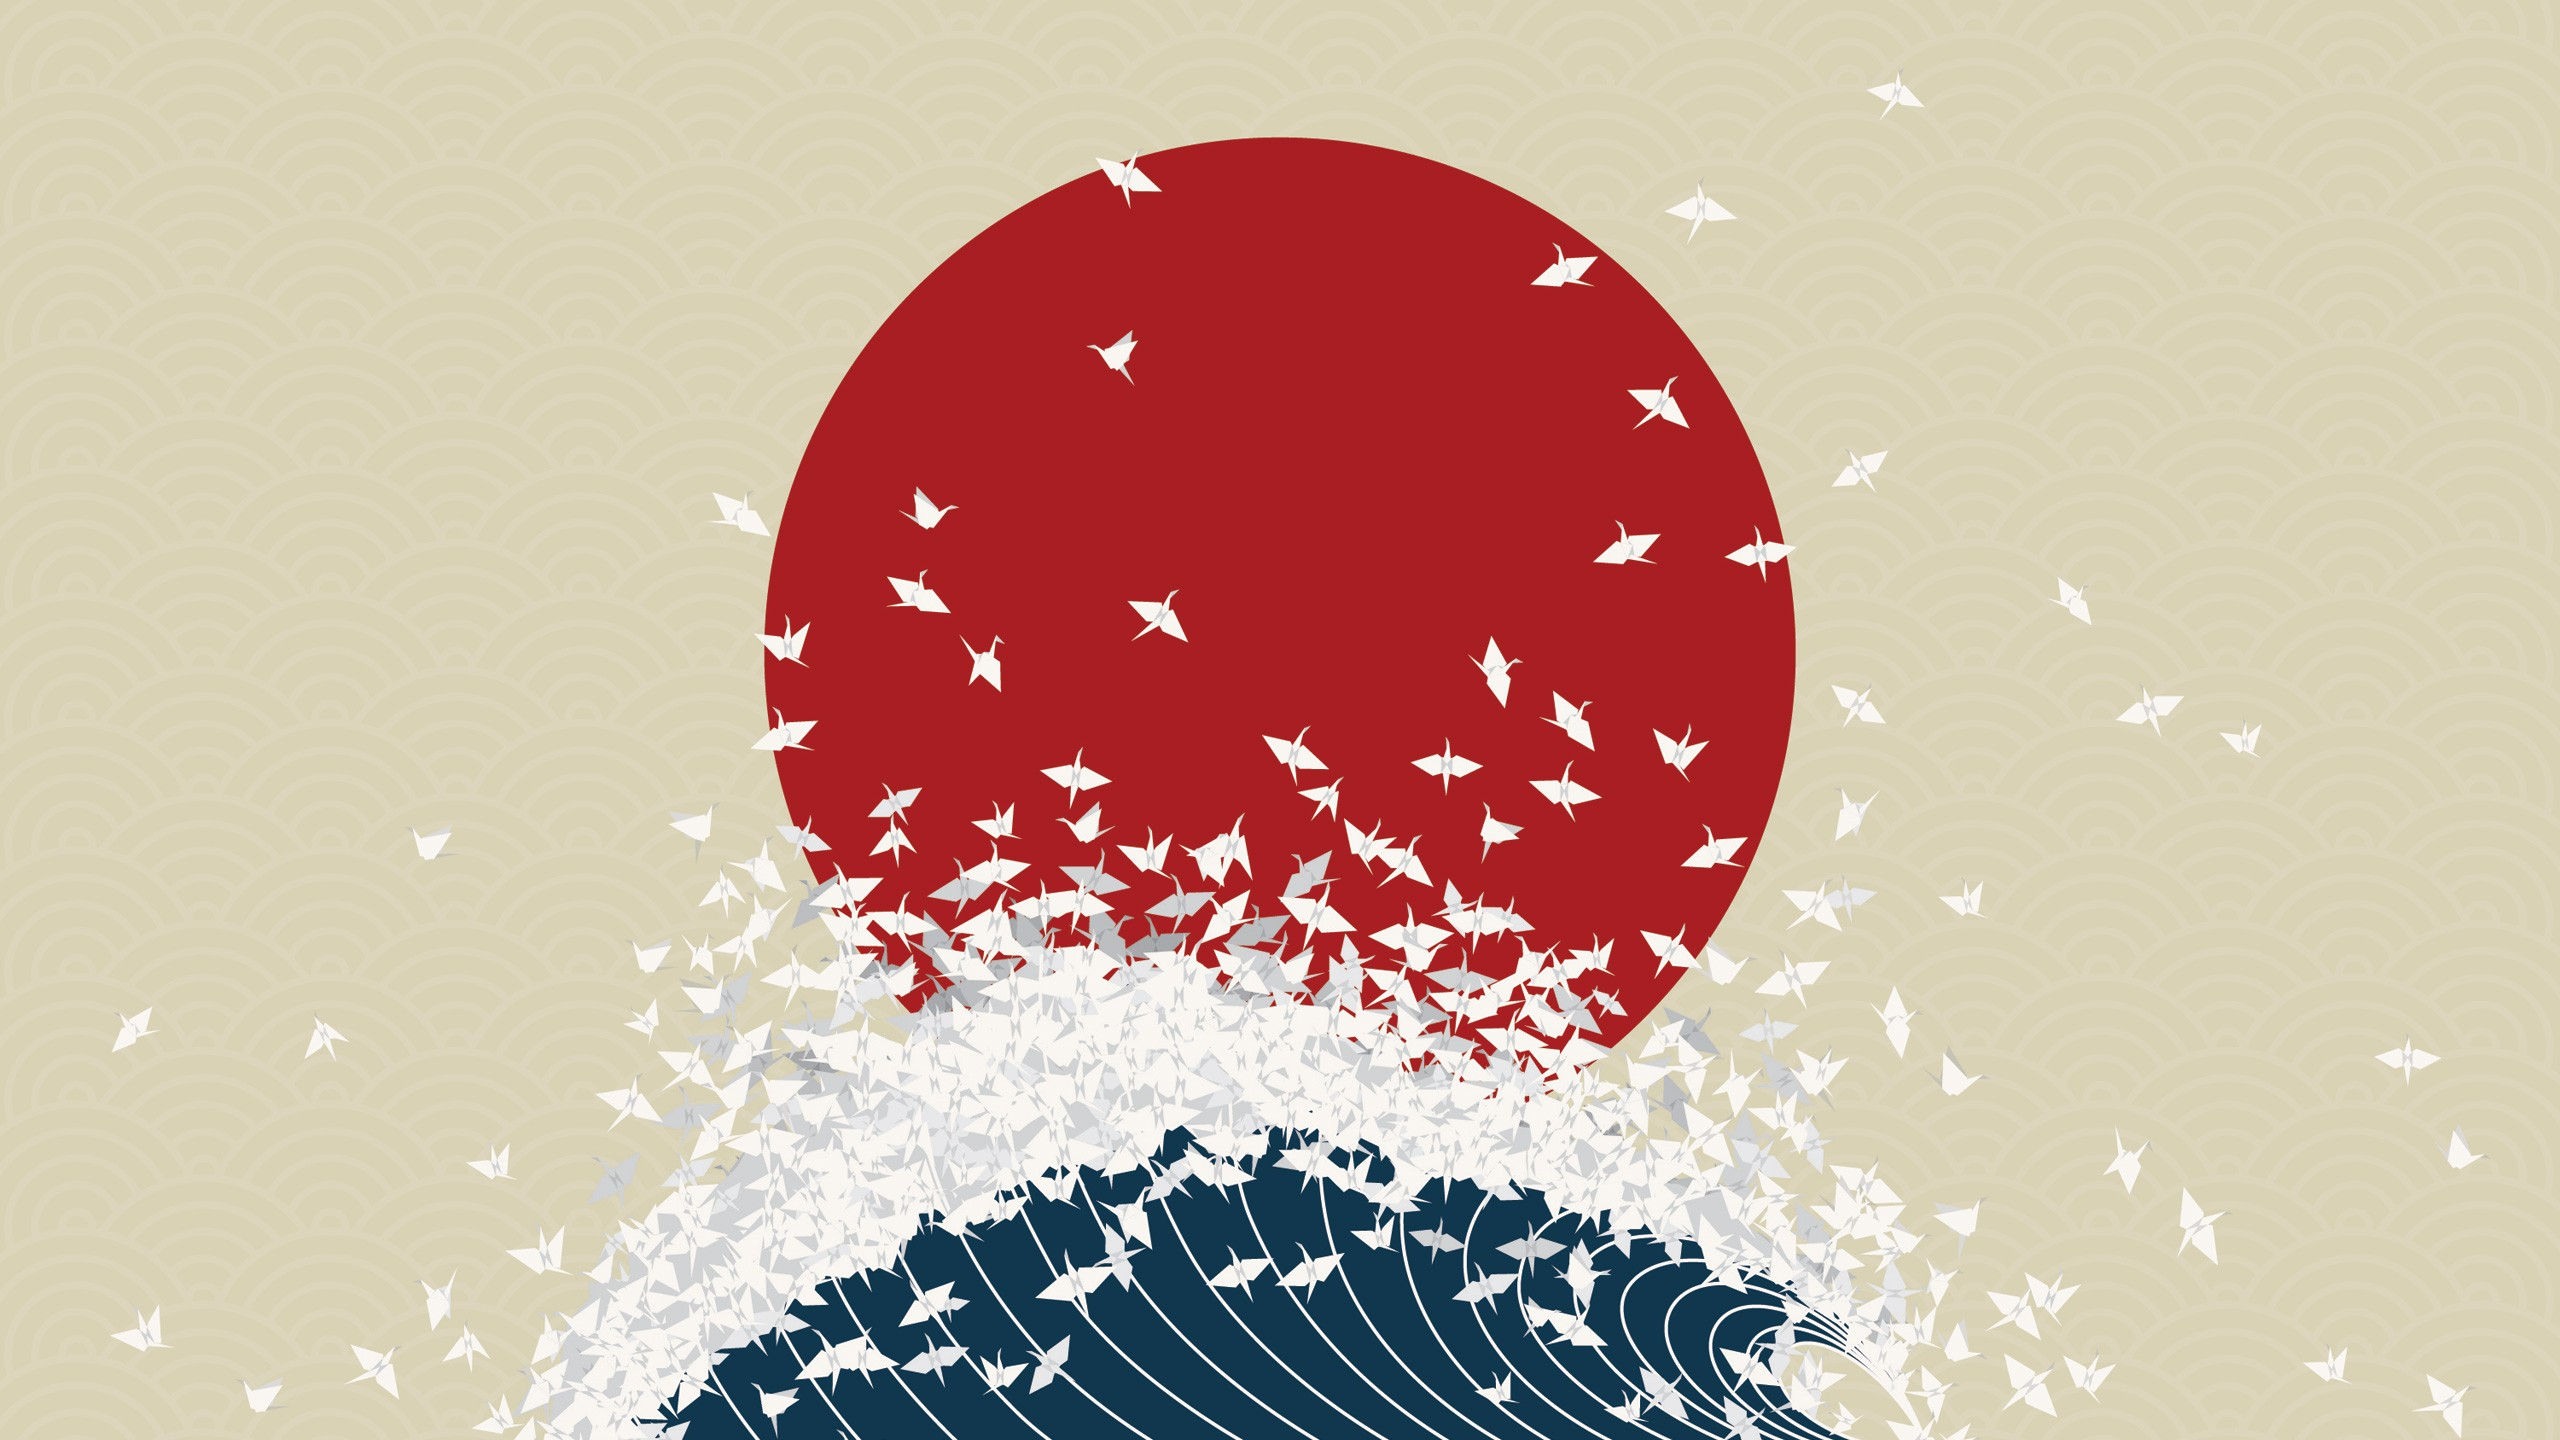 General 2560x1440 simple origami water Sun minimalism digital art waves Japan birds Nihon